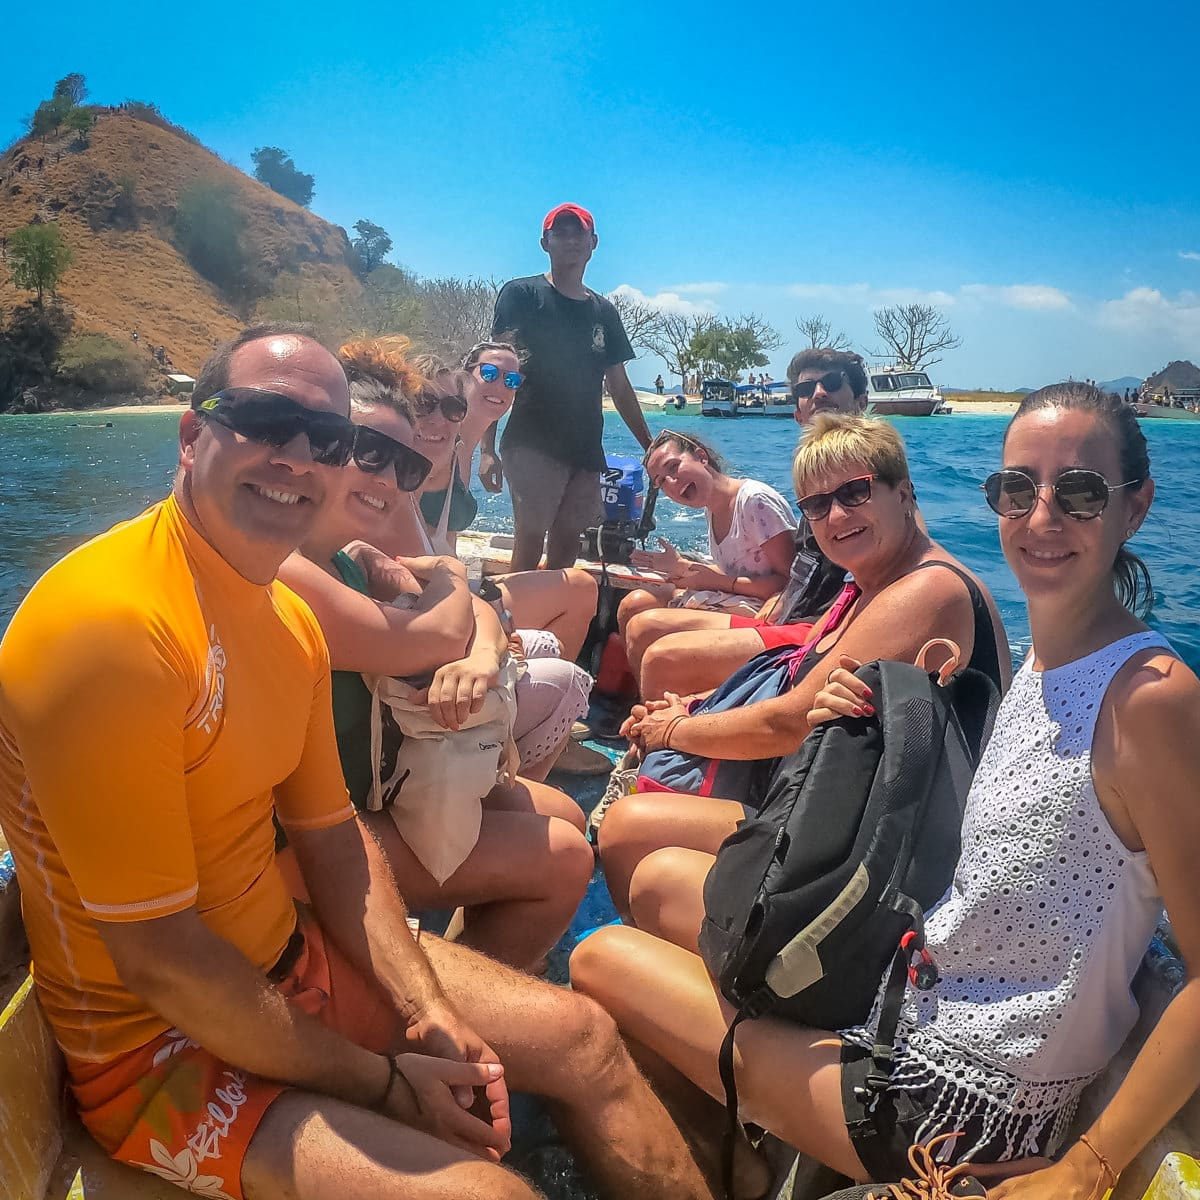 Komodo trip Shared at Kelor with Clients Smiling